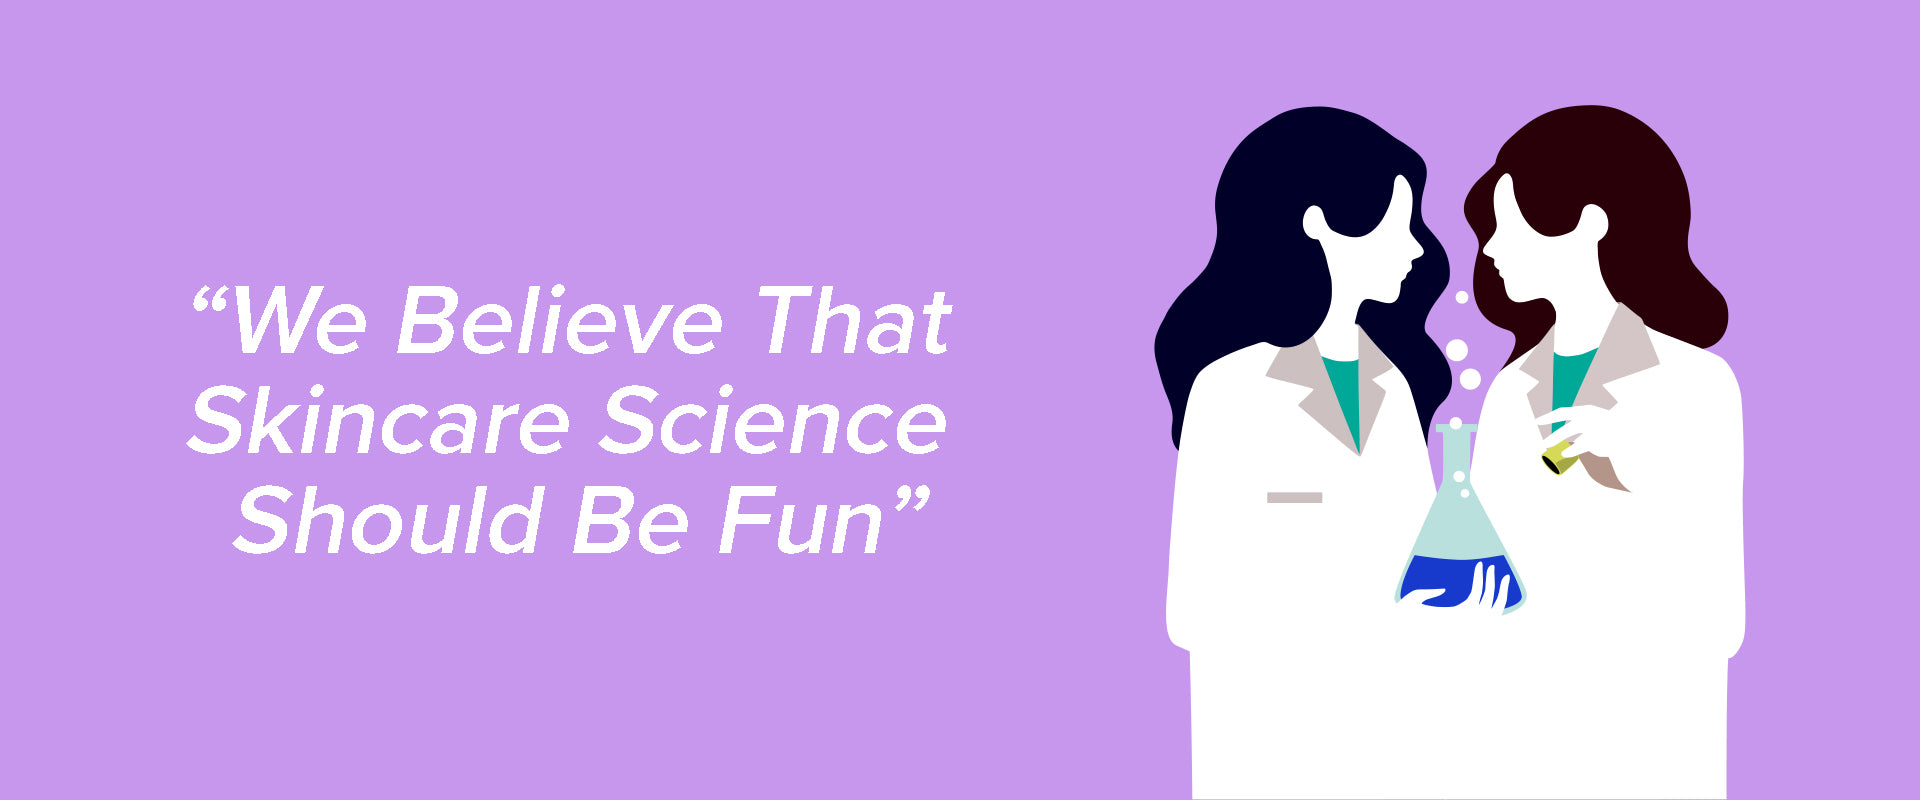 We believe that skincare science should be fun